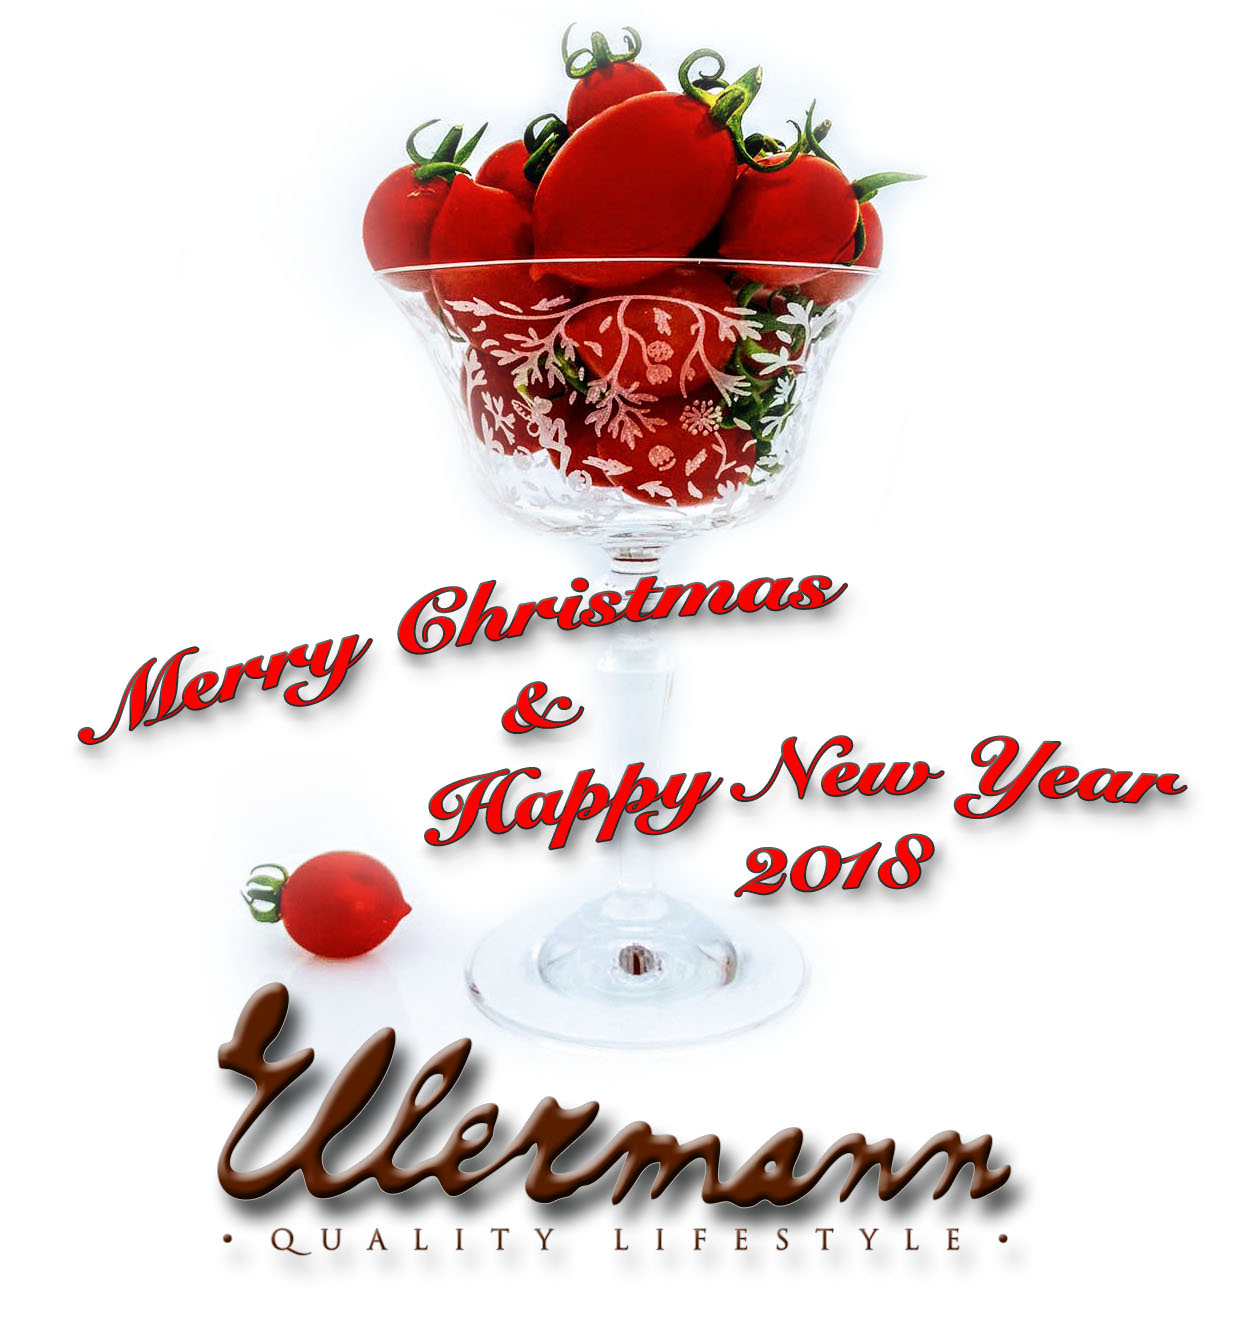 Merry Christmas & Happy New Year 2018 from Ellermann